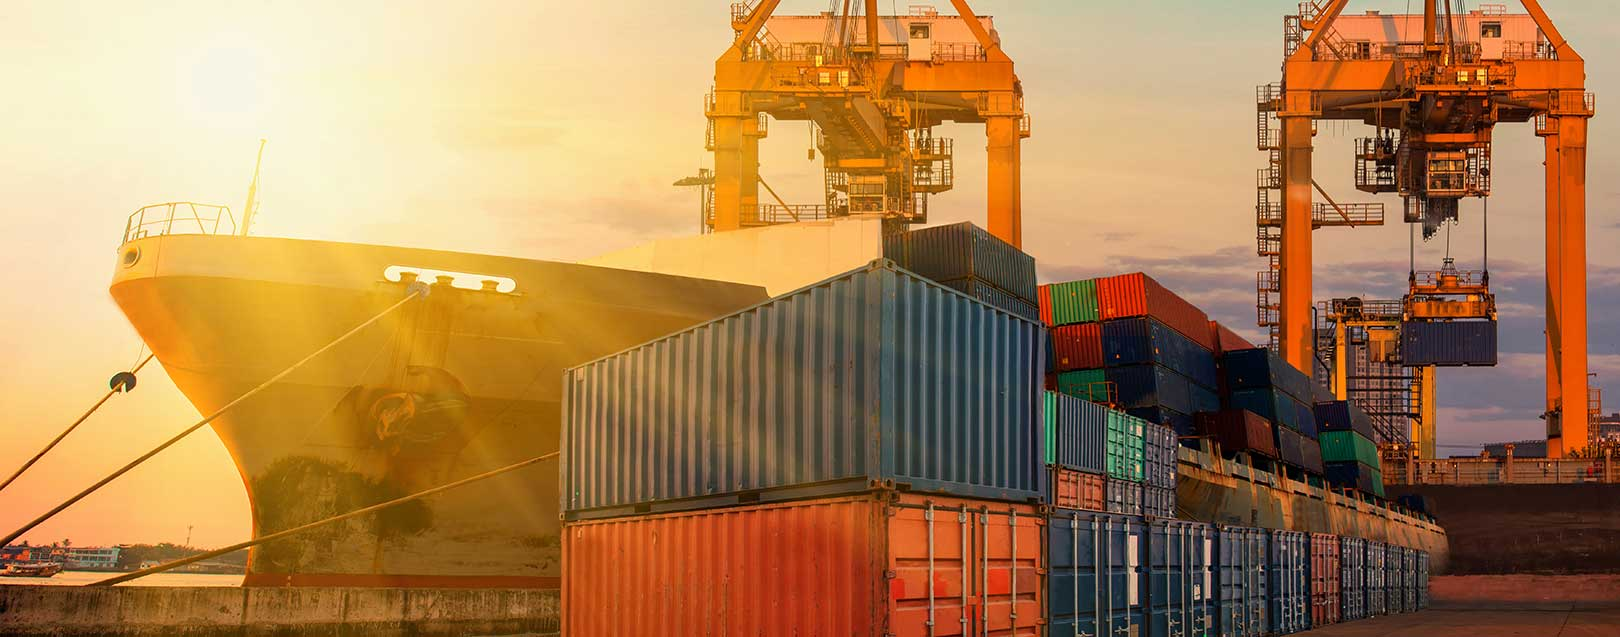 India-Africa trade to reach $117bn by 2020-21: Report